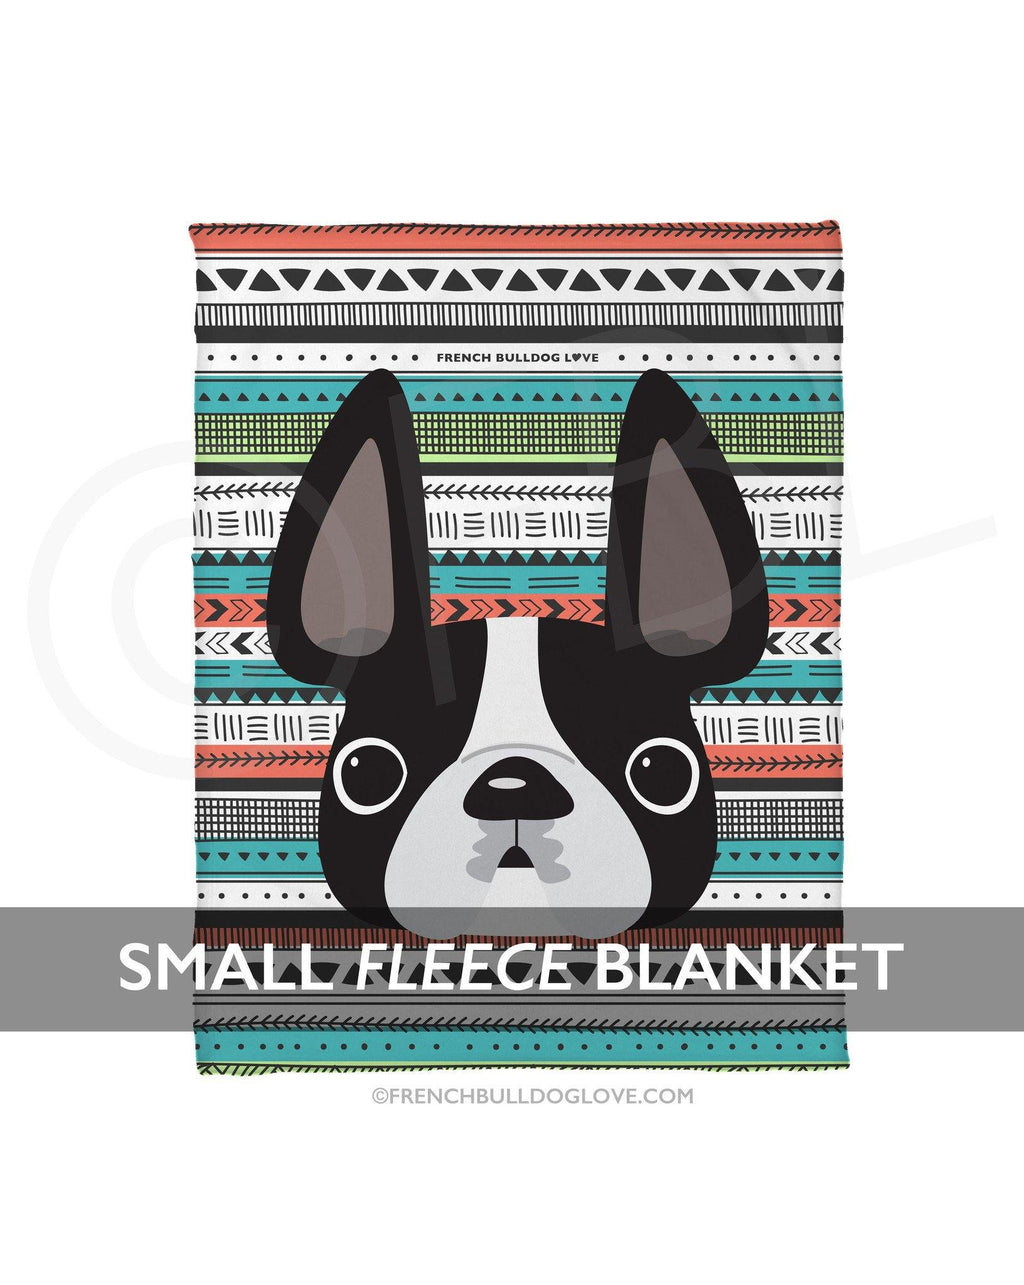 Black & White / Geometric French Bulldog Fleece Blanket - Small - French Bulldog Love - 1